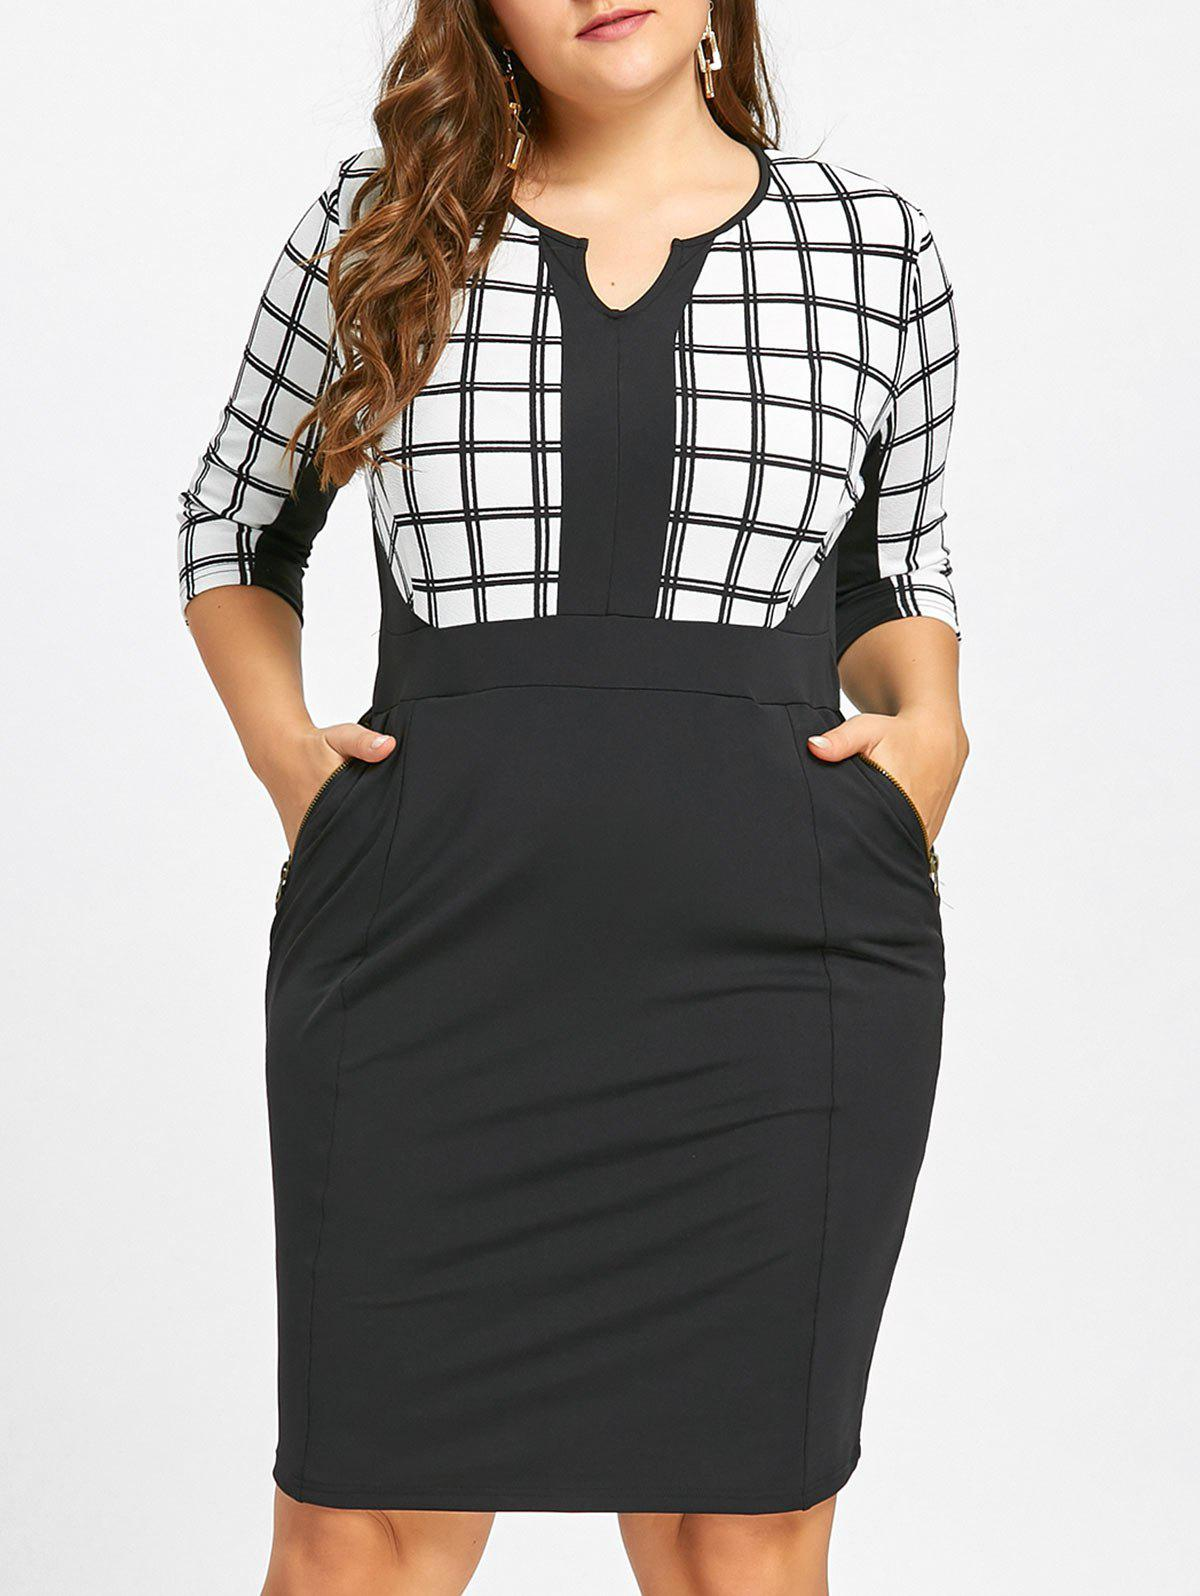 Zipper Embellished Plus Size Checked Sheath DressWOMEN<br><br>Size: 5XL; Color: WHITE AND BLACK; Style: Work; Material: Cotton Blend,Polyester; Silhouette: Sheath; Dresses Length: Knee-Length; Neckline: Scoop Neck; Sleeve Length: Half Sleeves; Embellishment: Pockets; Pattern Type: Plaid; With Belt: No; Season: Fall; Weight: 0.4500kg; Package Contents: 1 x Dress;